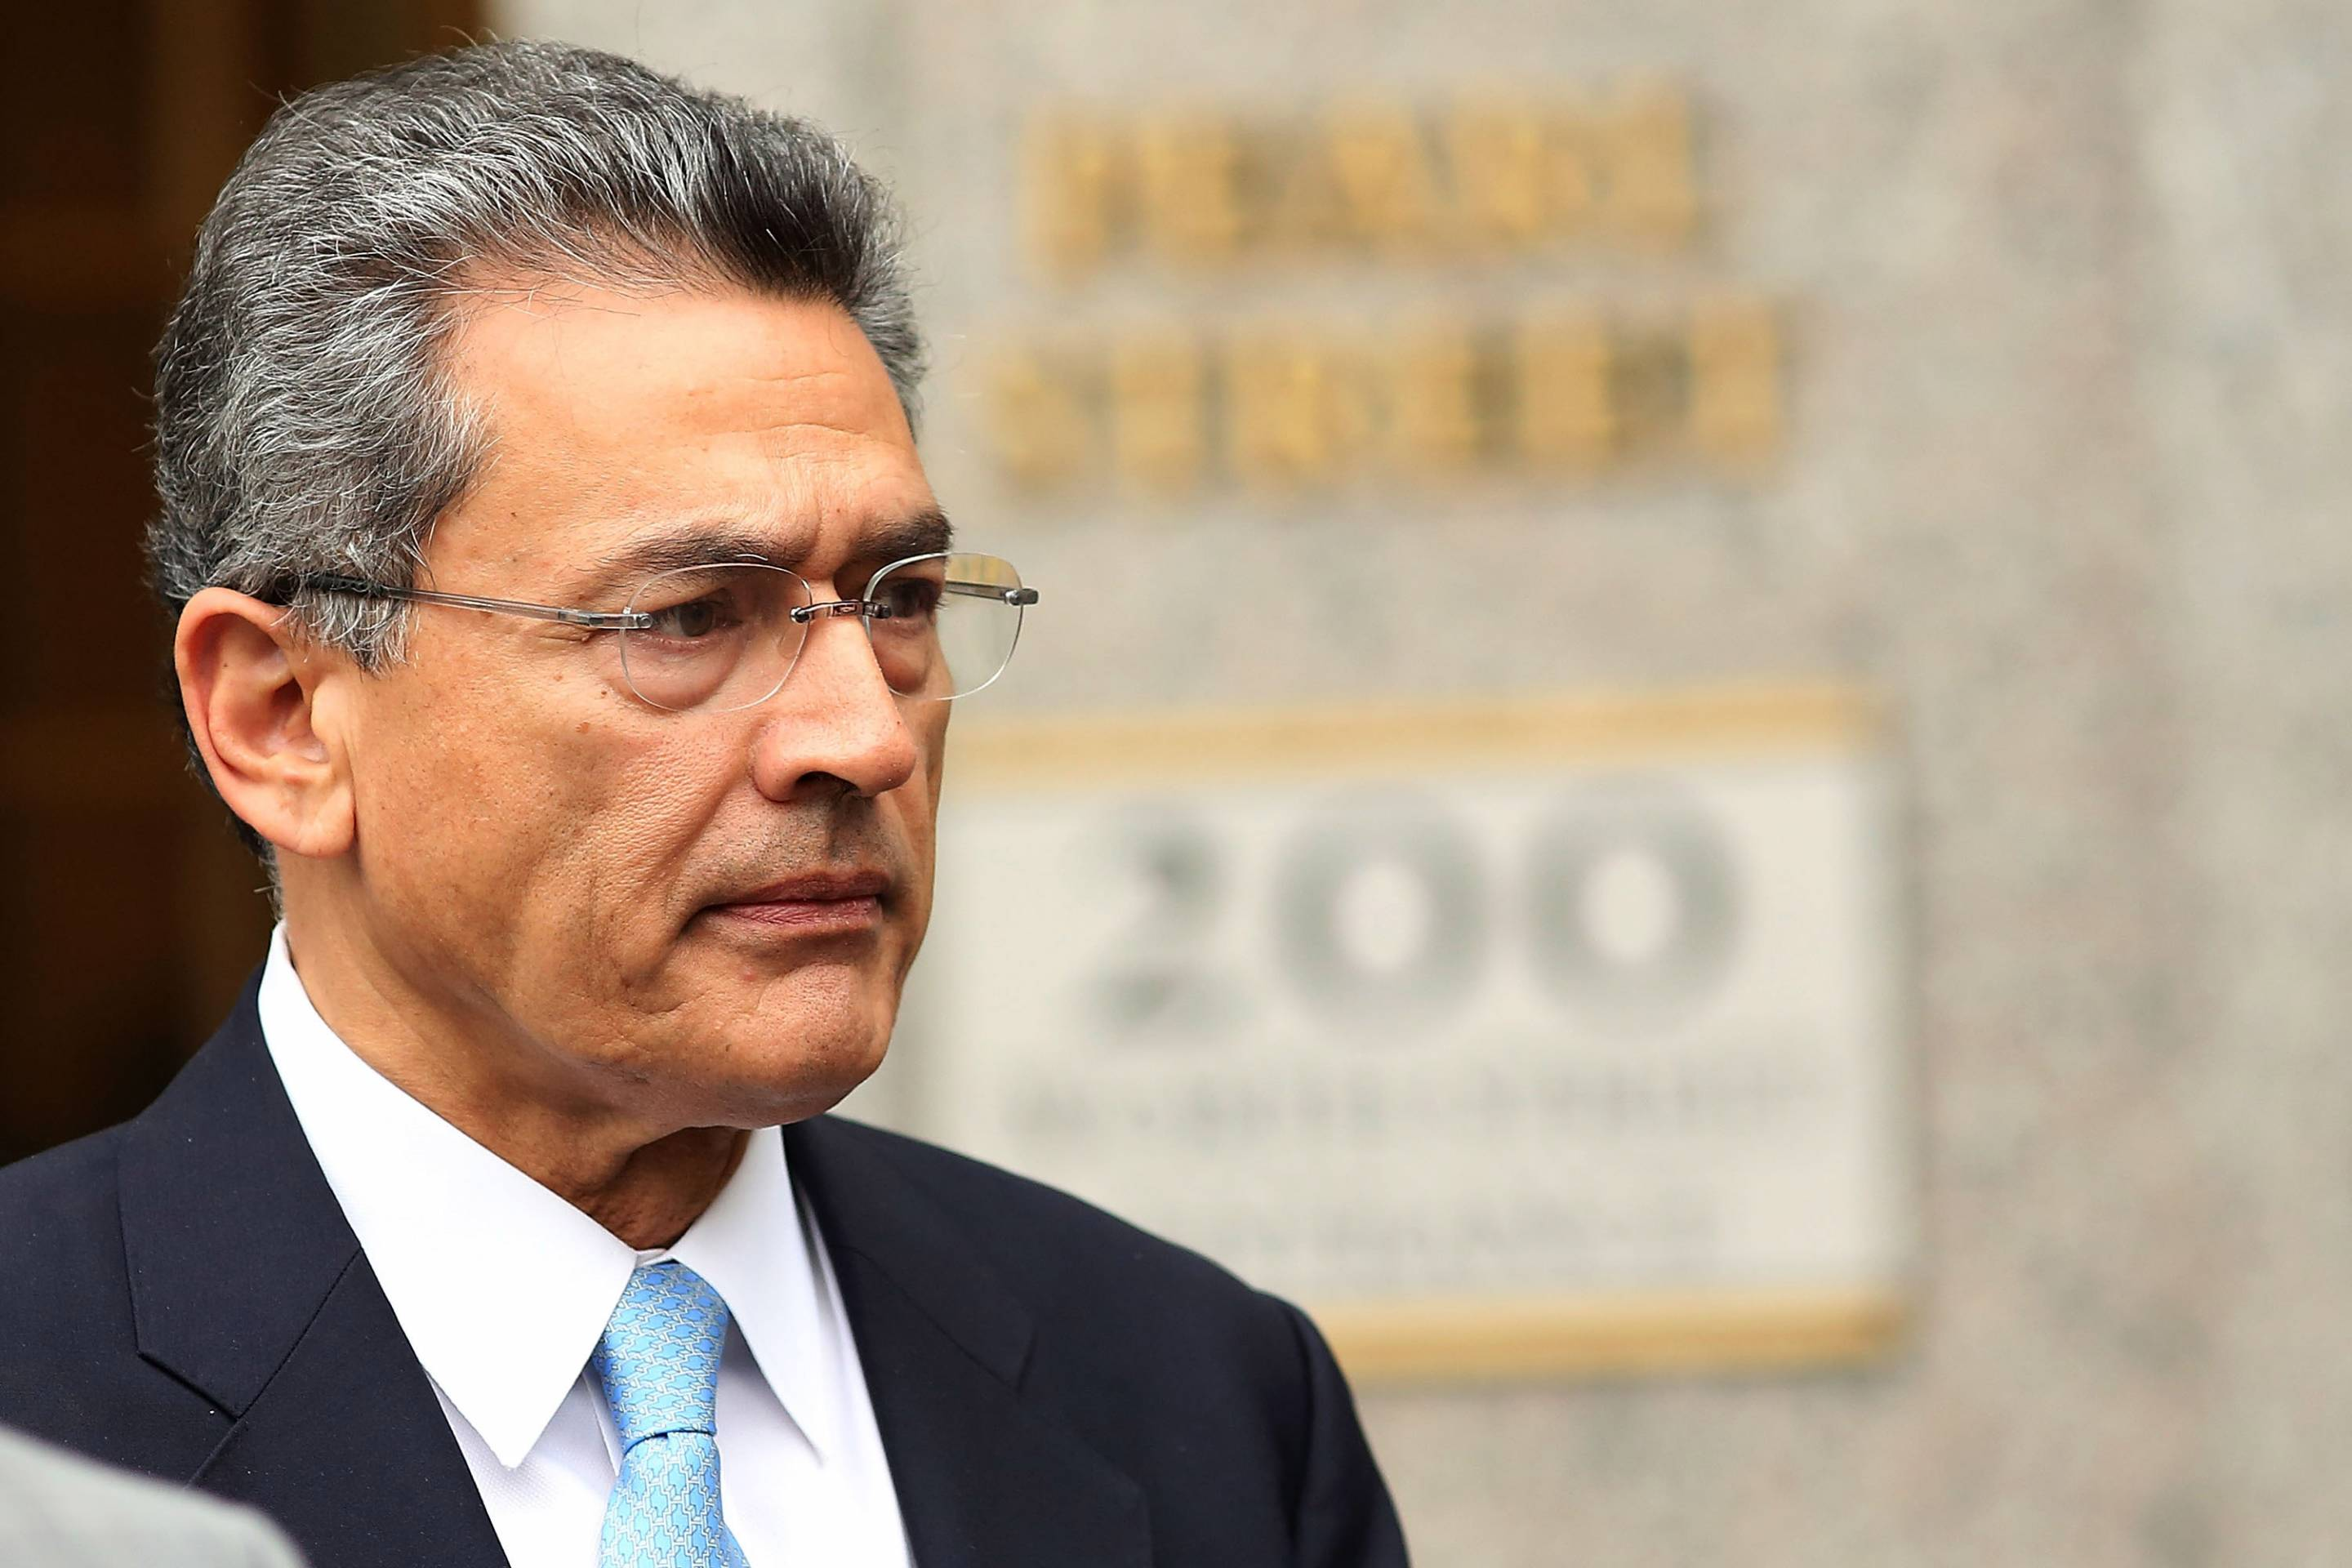 Rajat Gupta, former managing director at McKinsey, exits federal court after being sentenced to two years in prison on Oct. 24, 2012, in New York City.